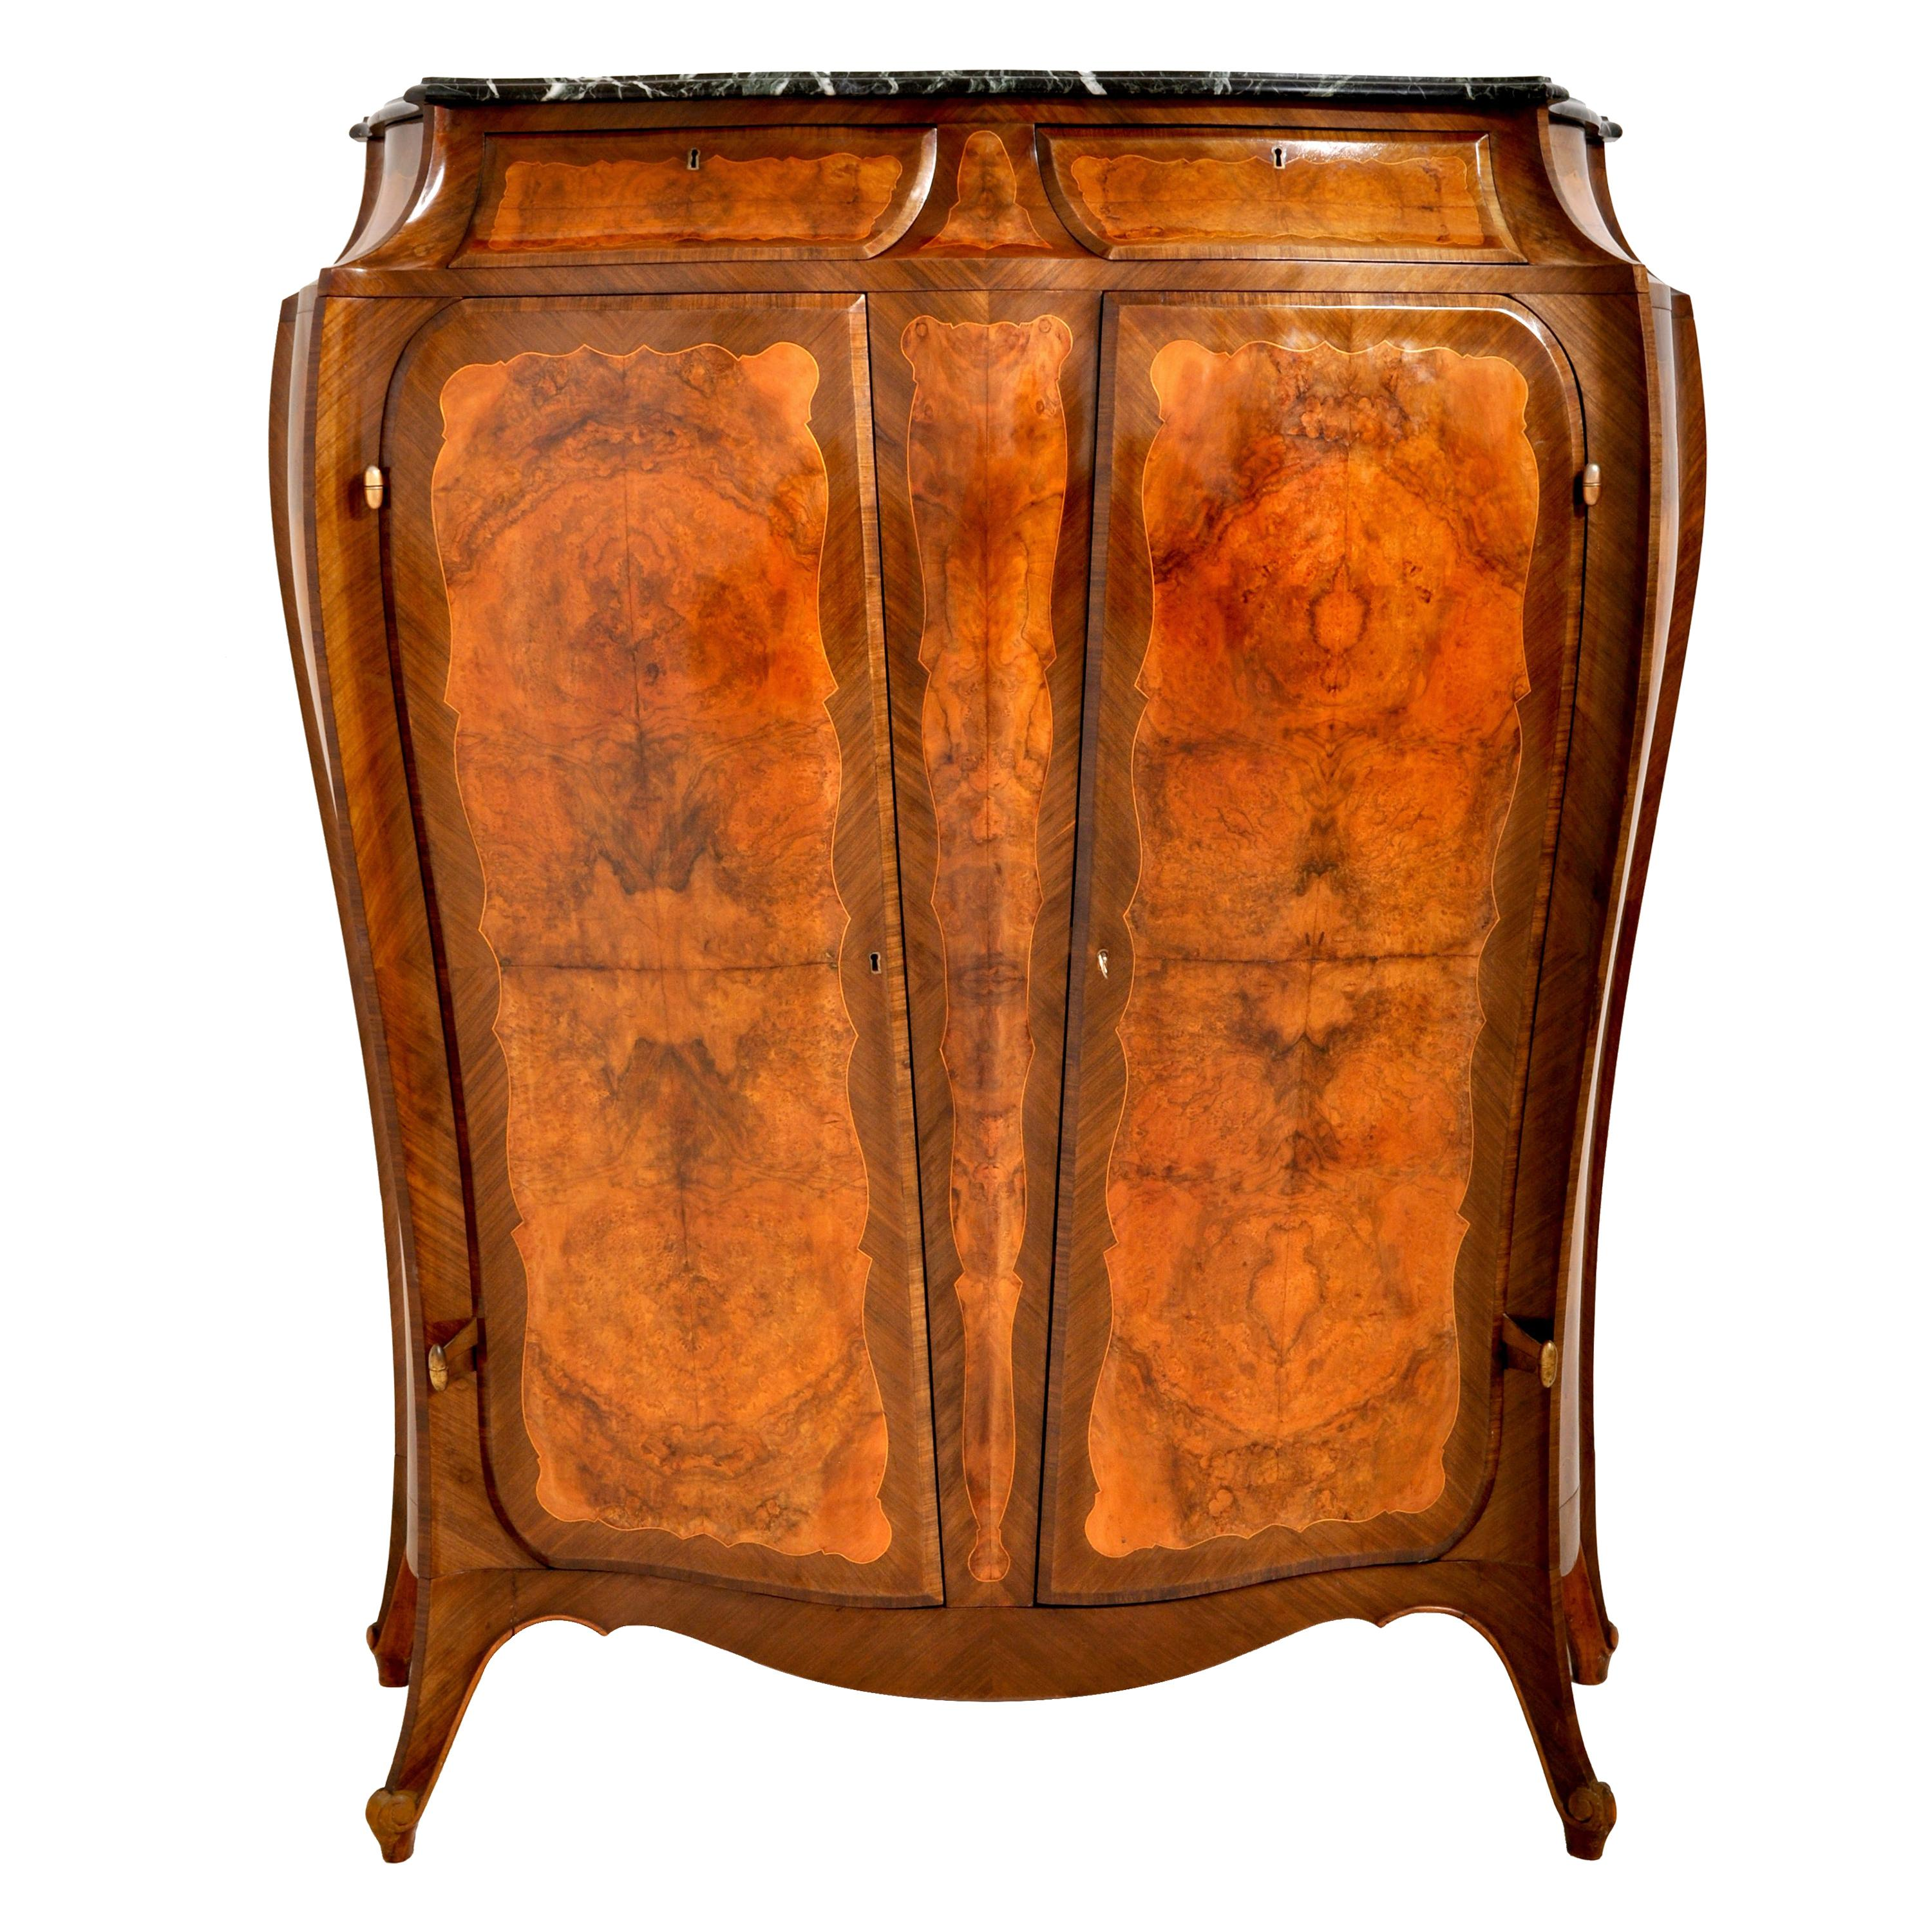 Antique French Art Nouveau Inlaid Walnut Tall Marble Top Cabinet, 1900